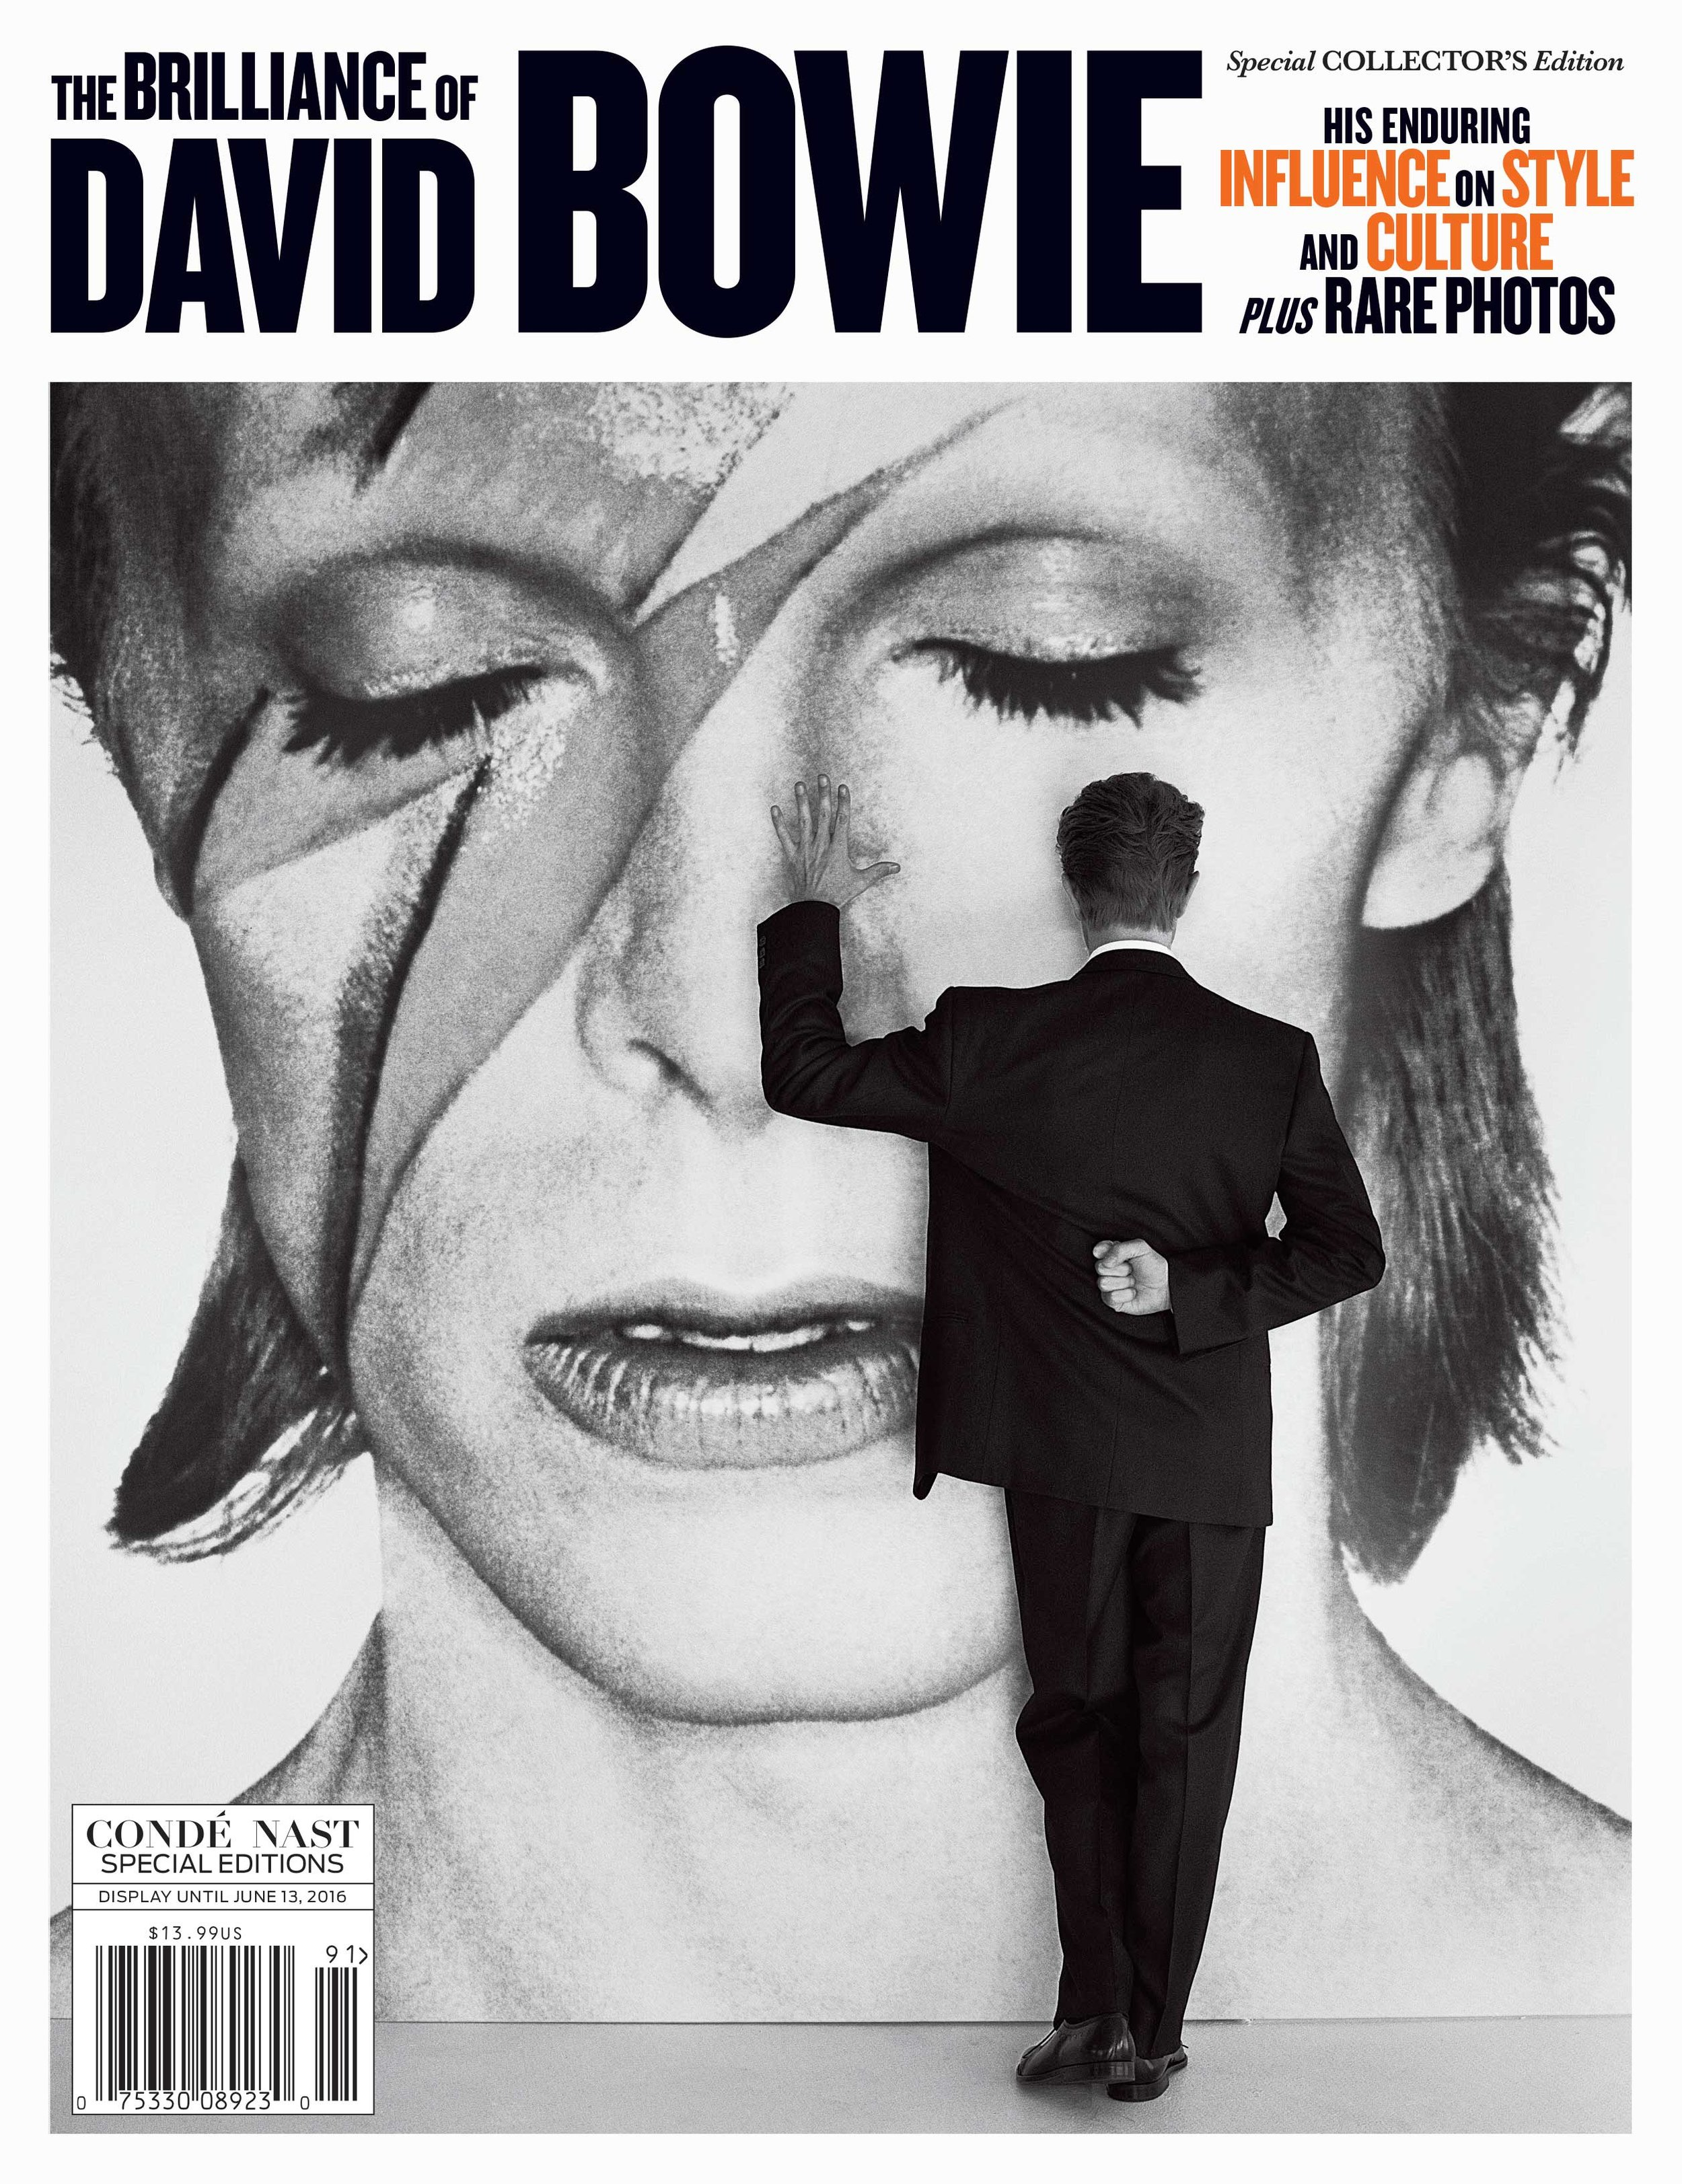 SP0316_BOWIE_COVER.jpg